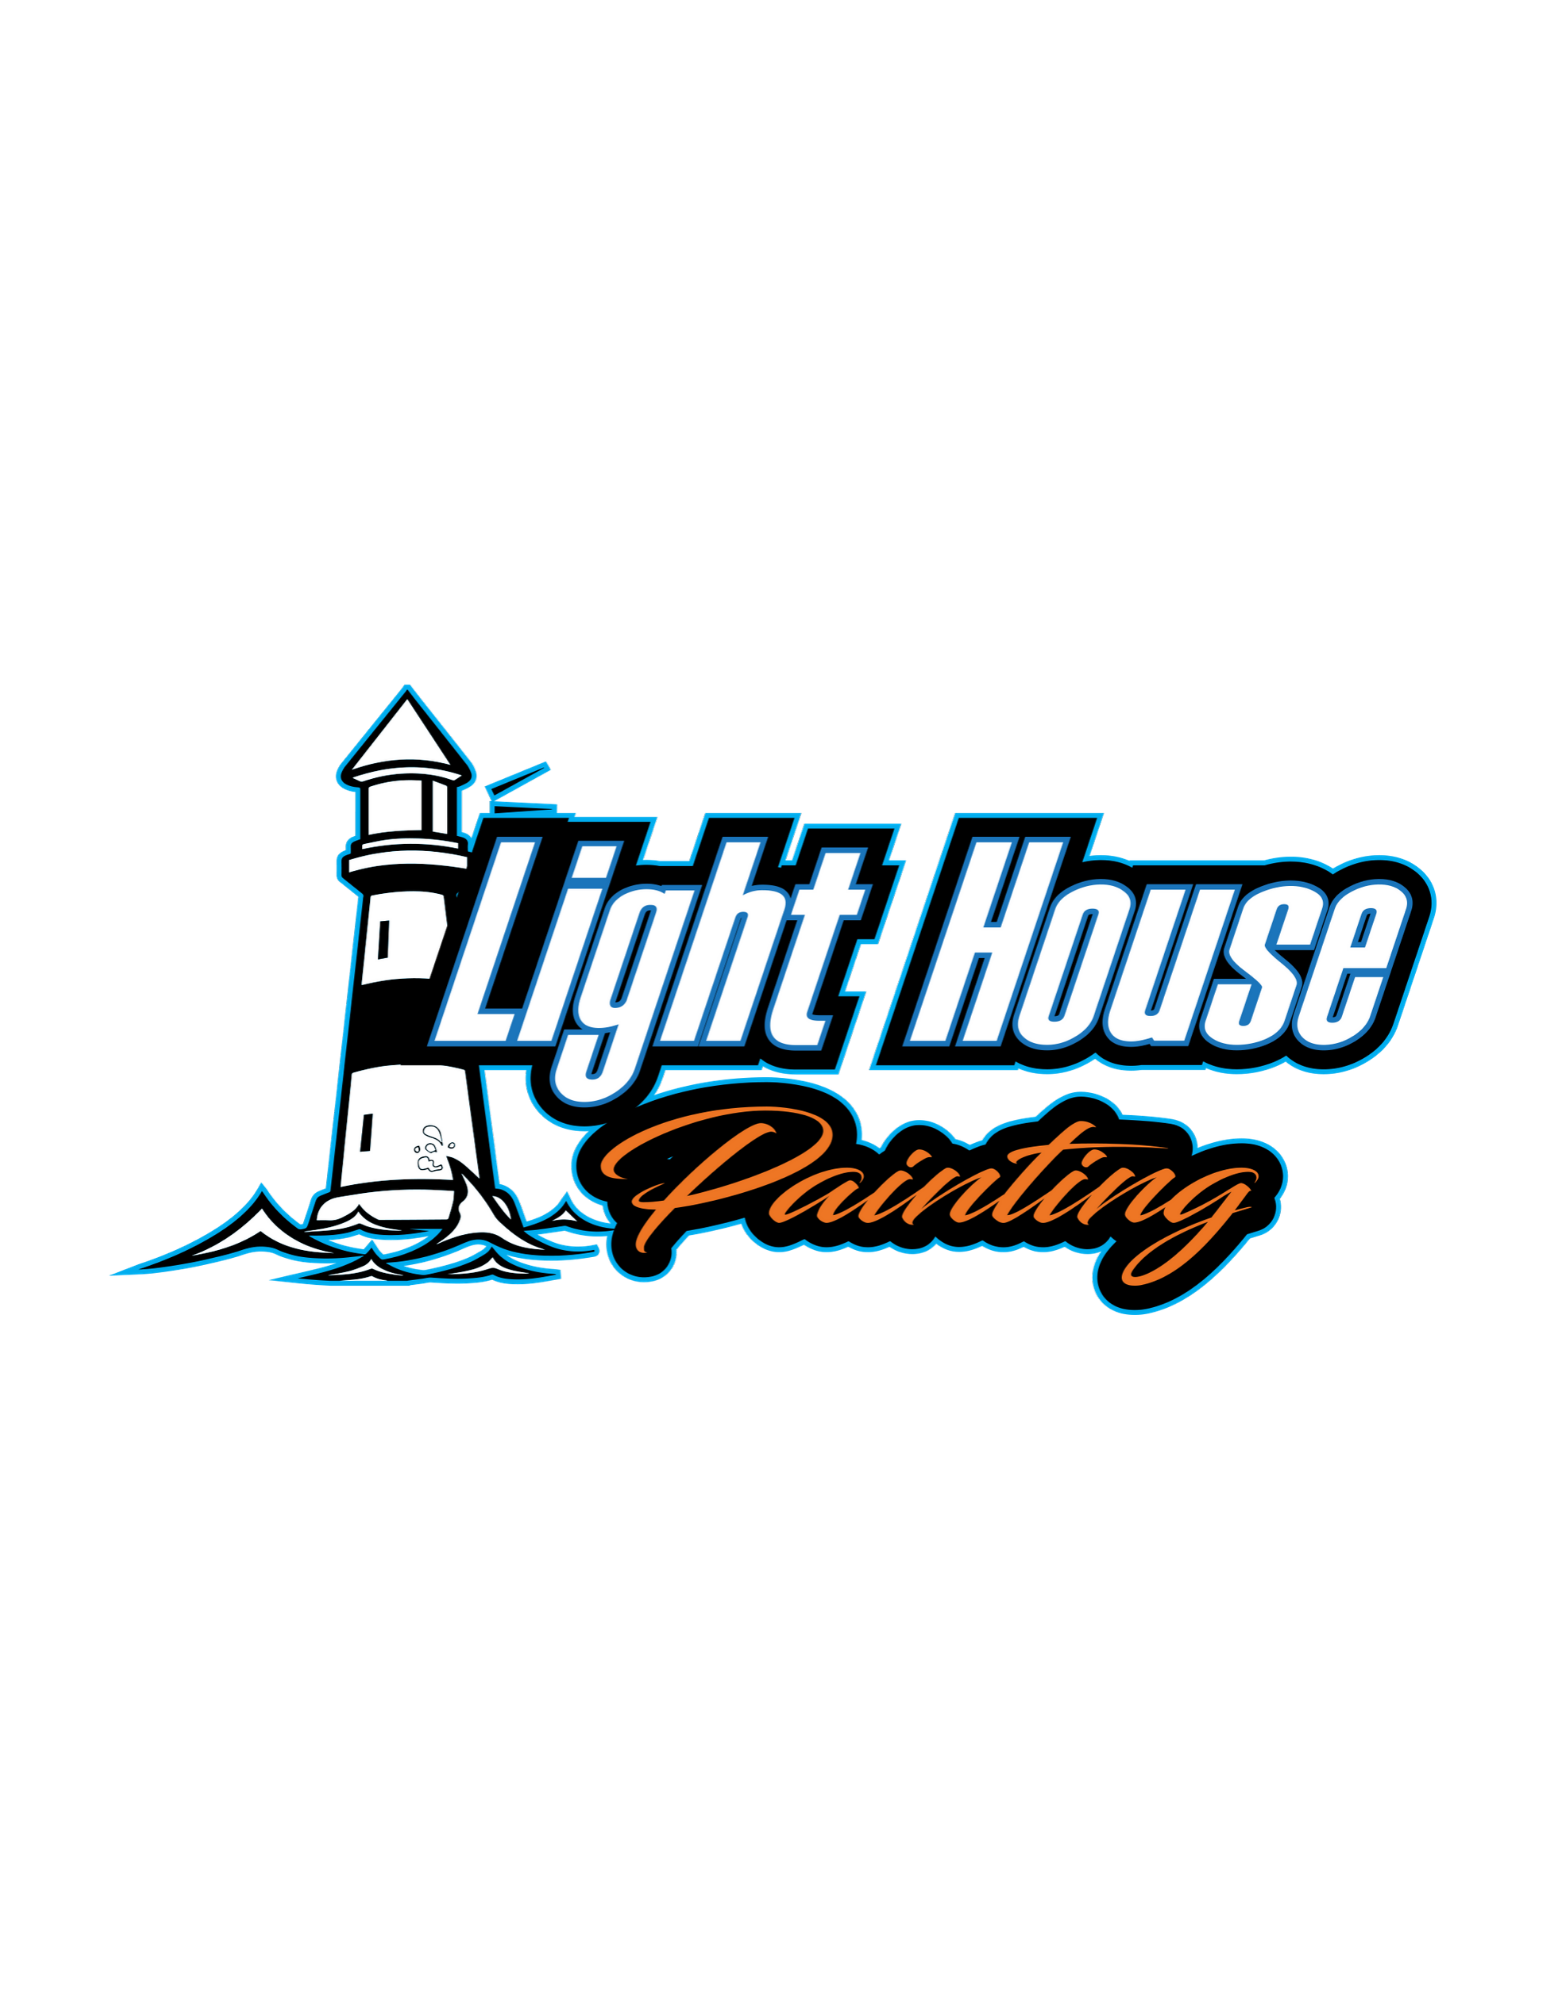 Todays sponsor spotlight the great team at Light House Painting